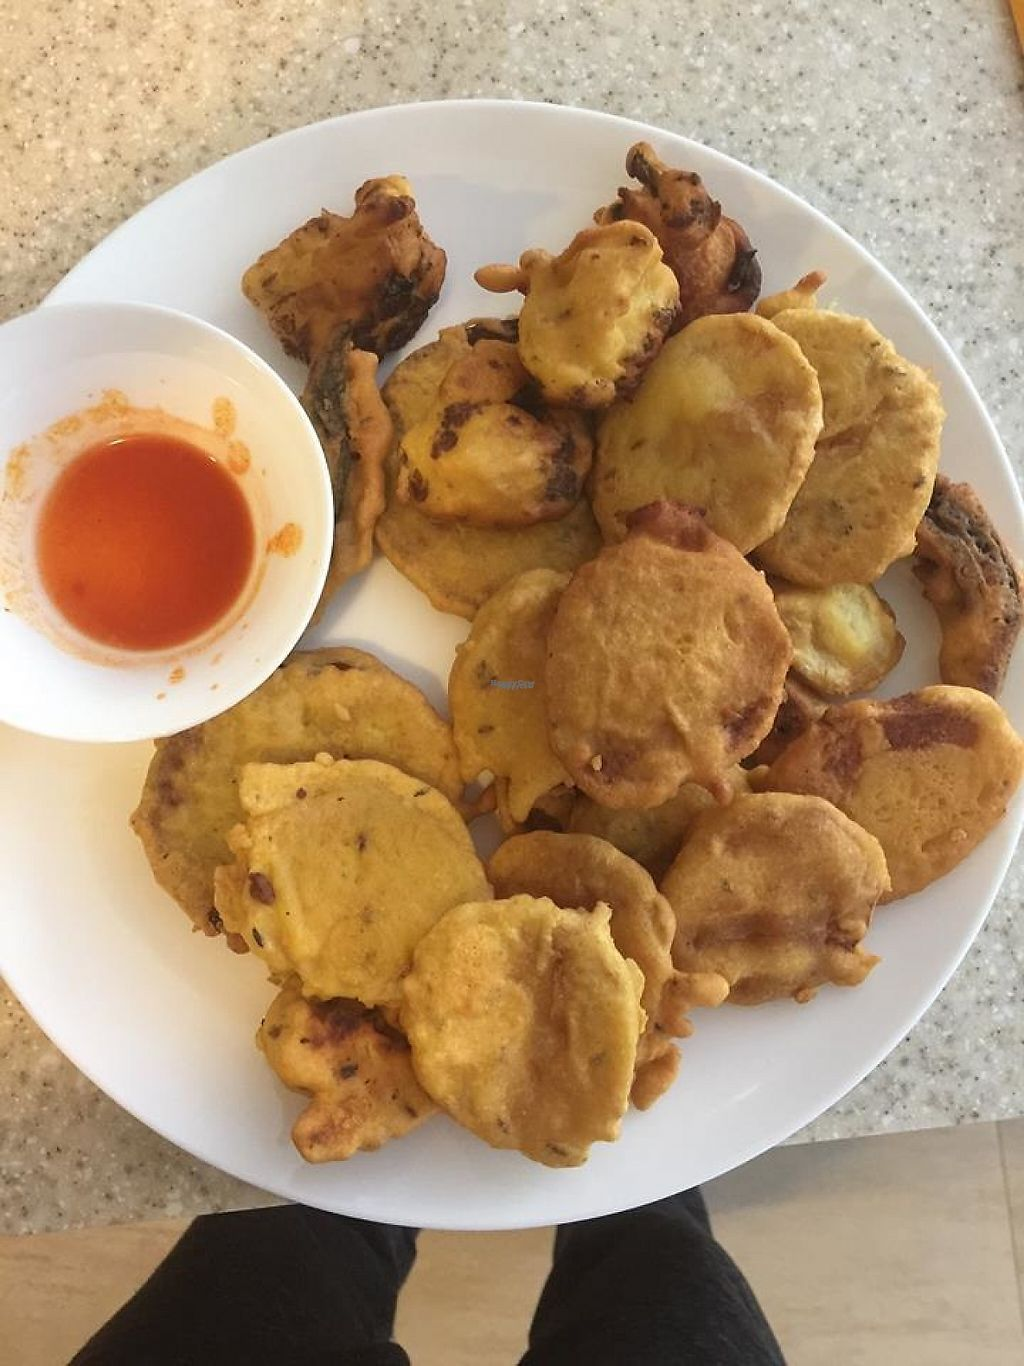 """Photo of Blue Caterpillar Vegan Cafe   by <a href=""""/members/profile/community"""">community</a> <br/>vegan pakora  <br/> December 15, 2016  - <a href='/contact/abuse/image/59182/201351'>Report</a>"""